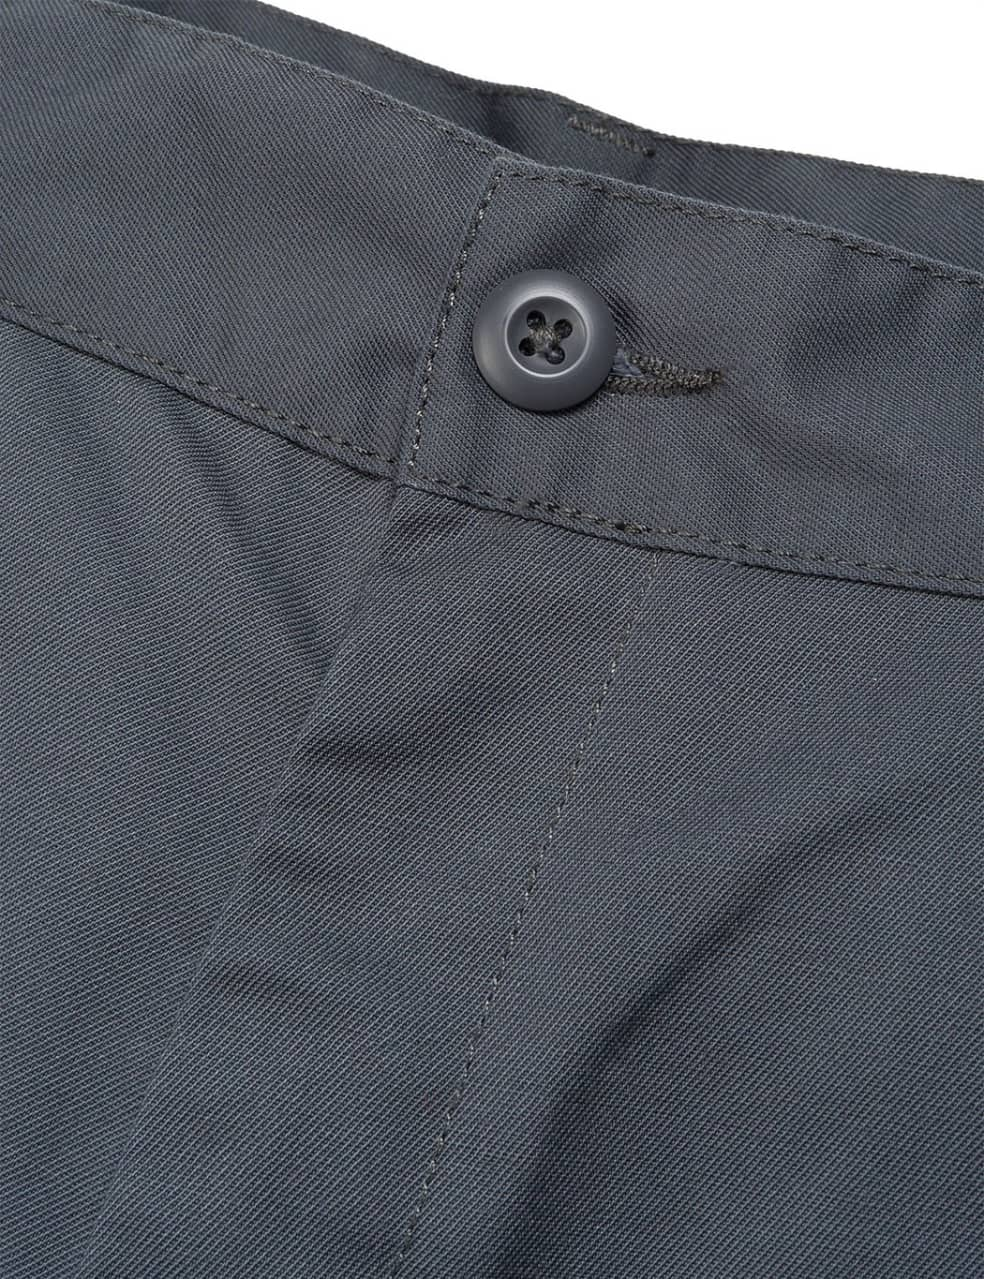 Carhartt-WIP Station Pant - Blacksmith rinsed | Trousers by Carhartt WIP 2